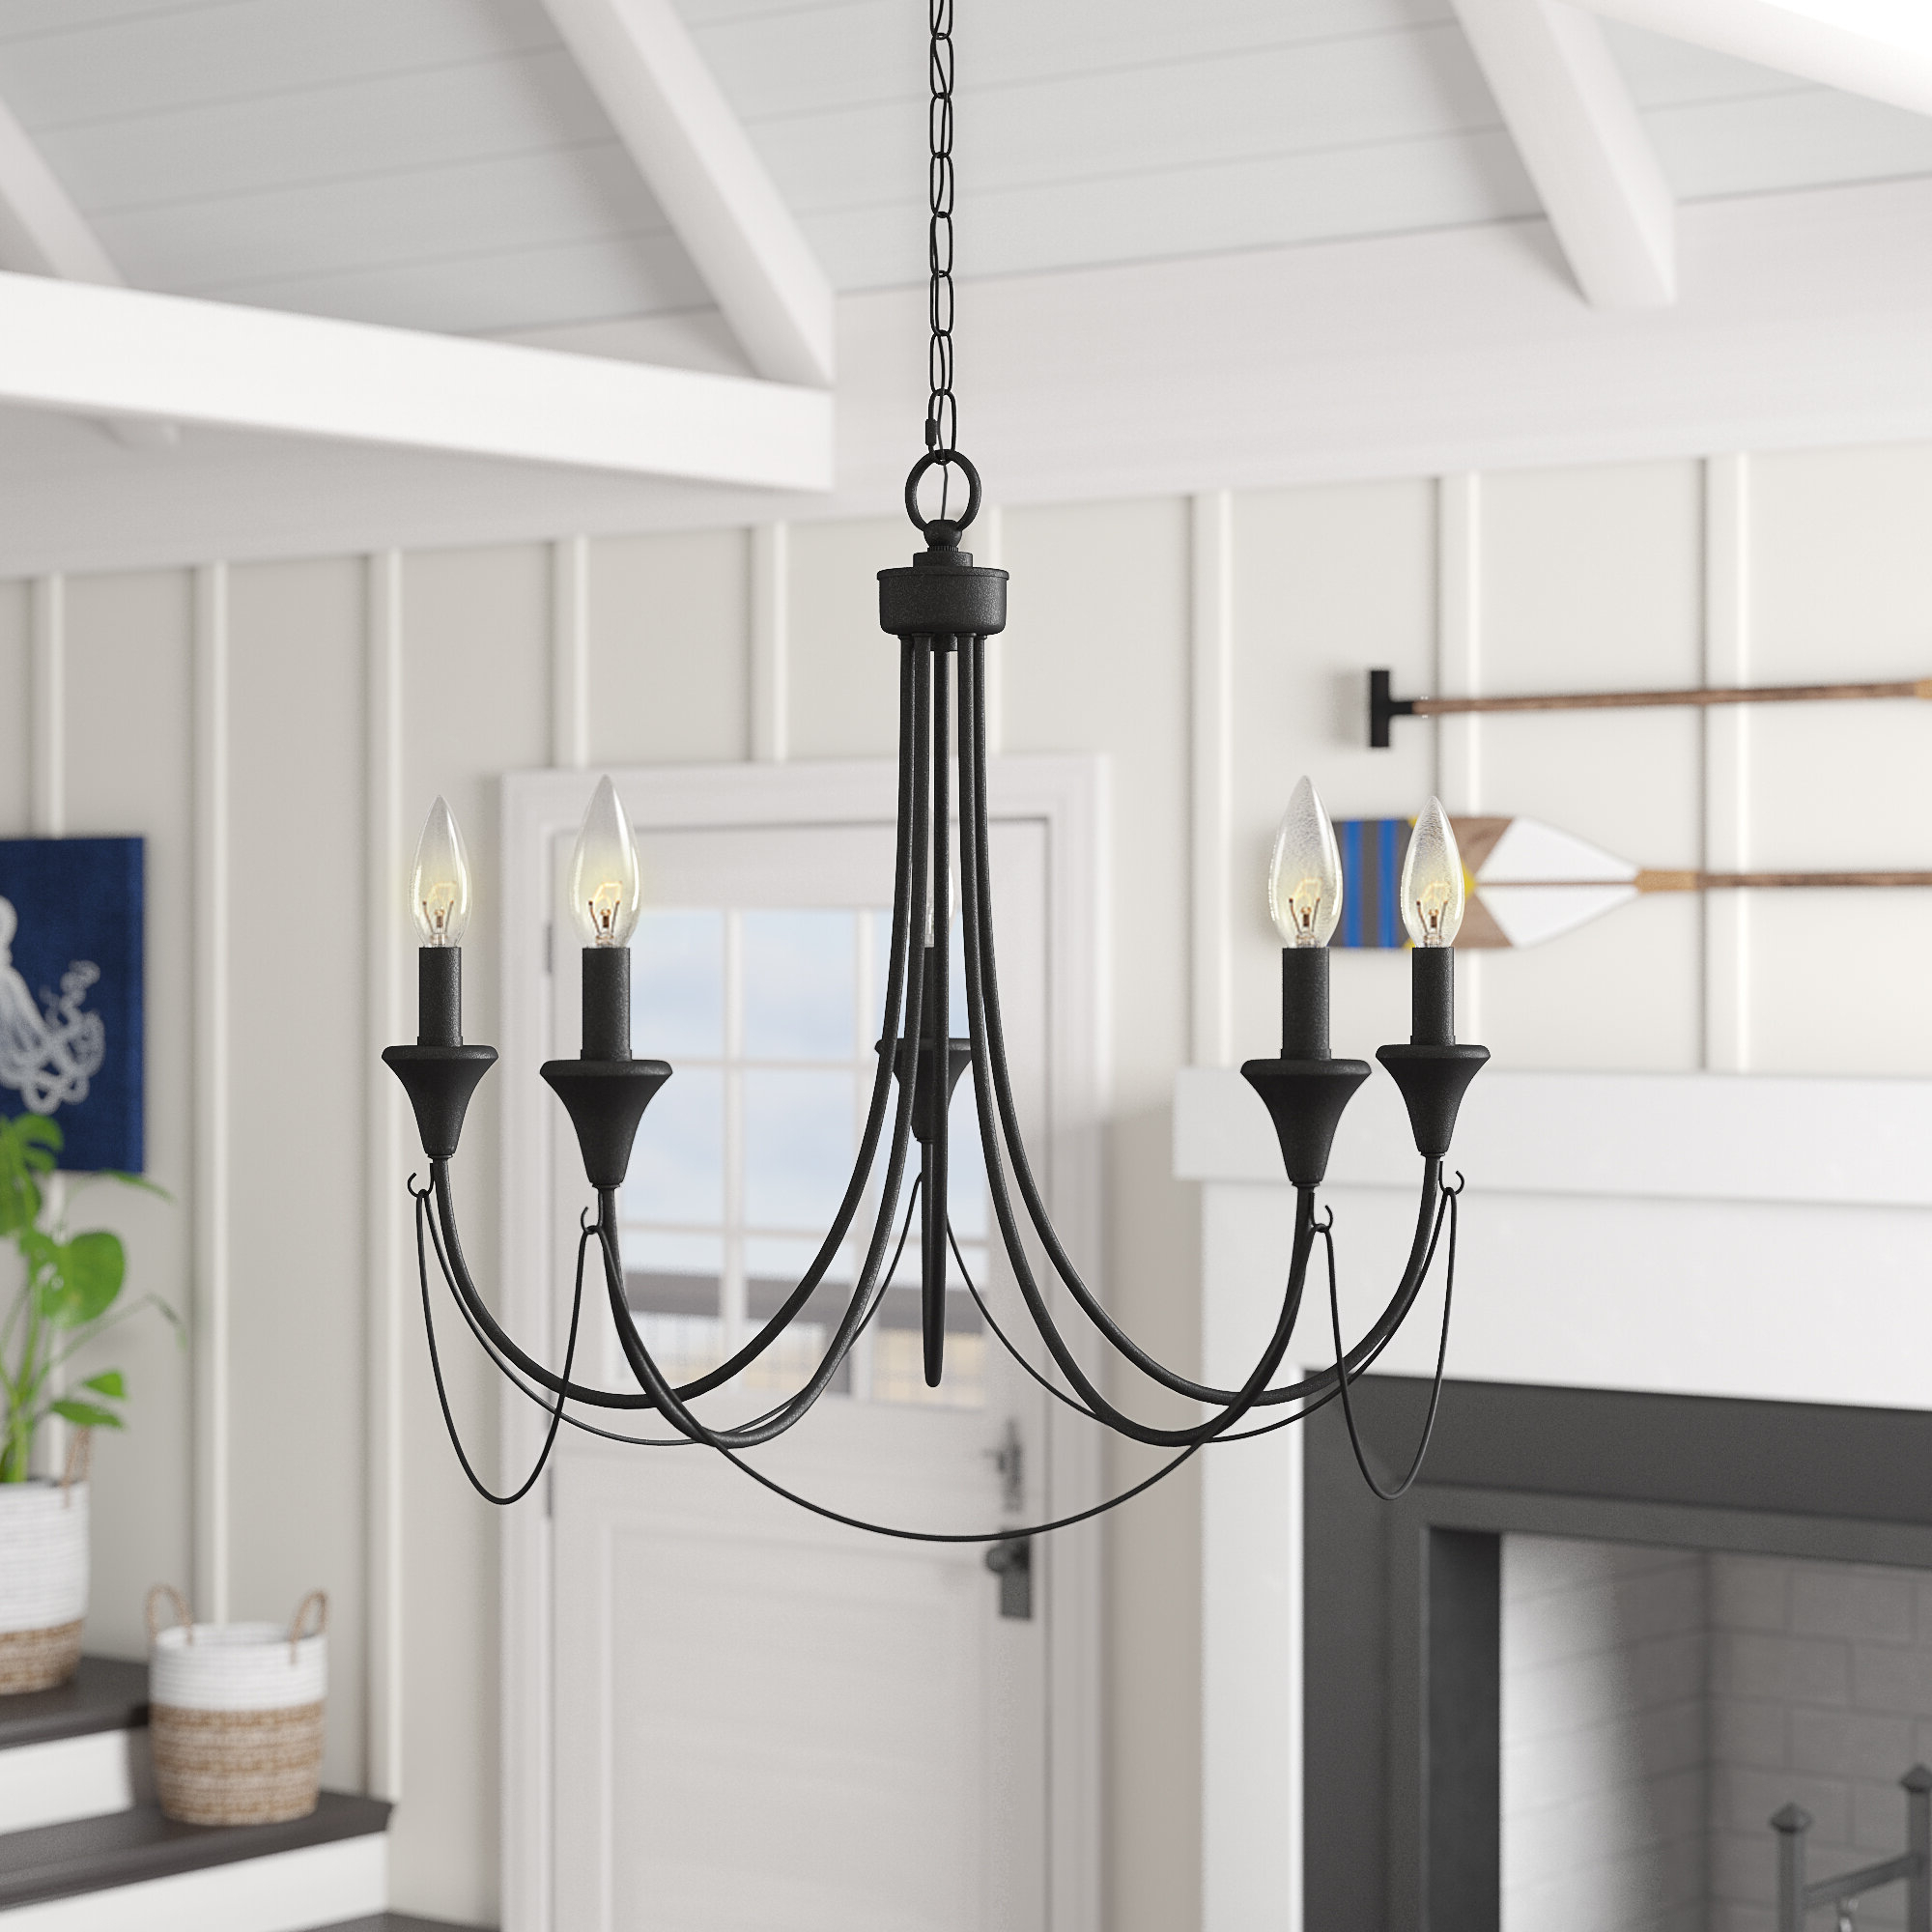 Shaylee 5 Light Candle Style Chandeliers Intended For Recent Walczak 5 Light Candle Style Chandelier (View 16 of 25)